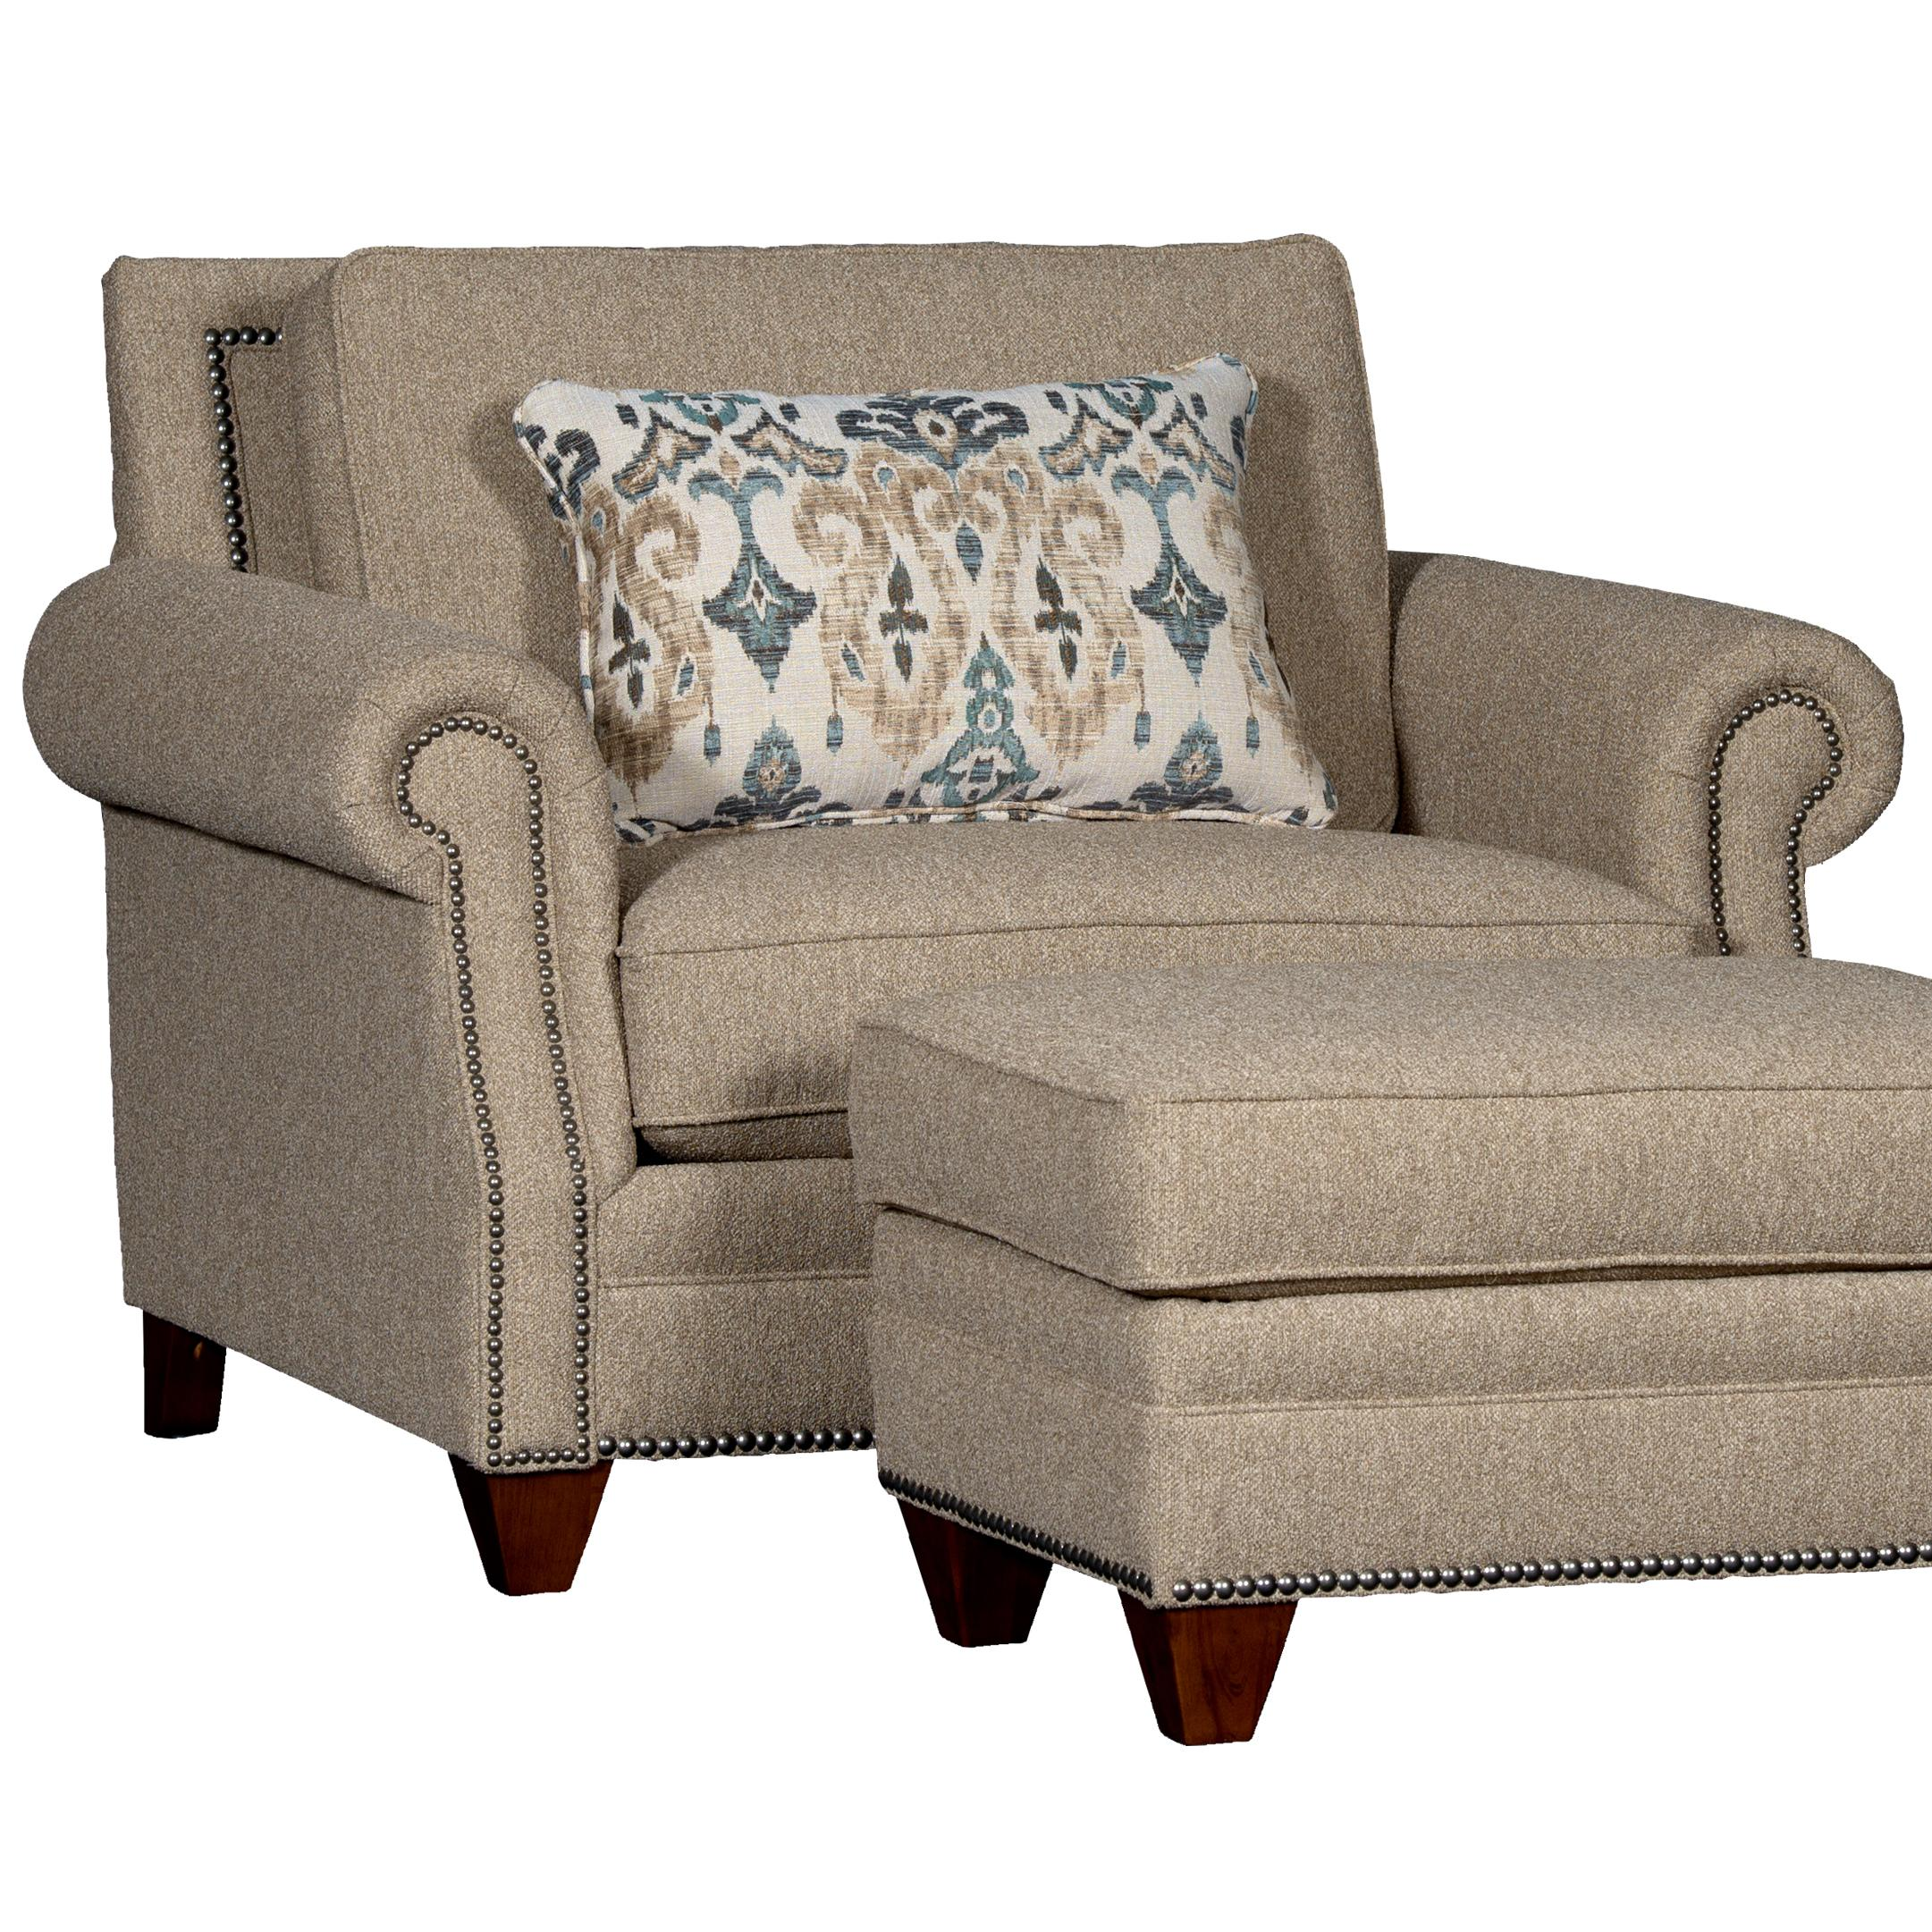 7240 Chair by Mayo at Miller Waldrop Furniture and Decor